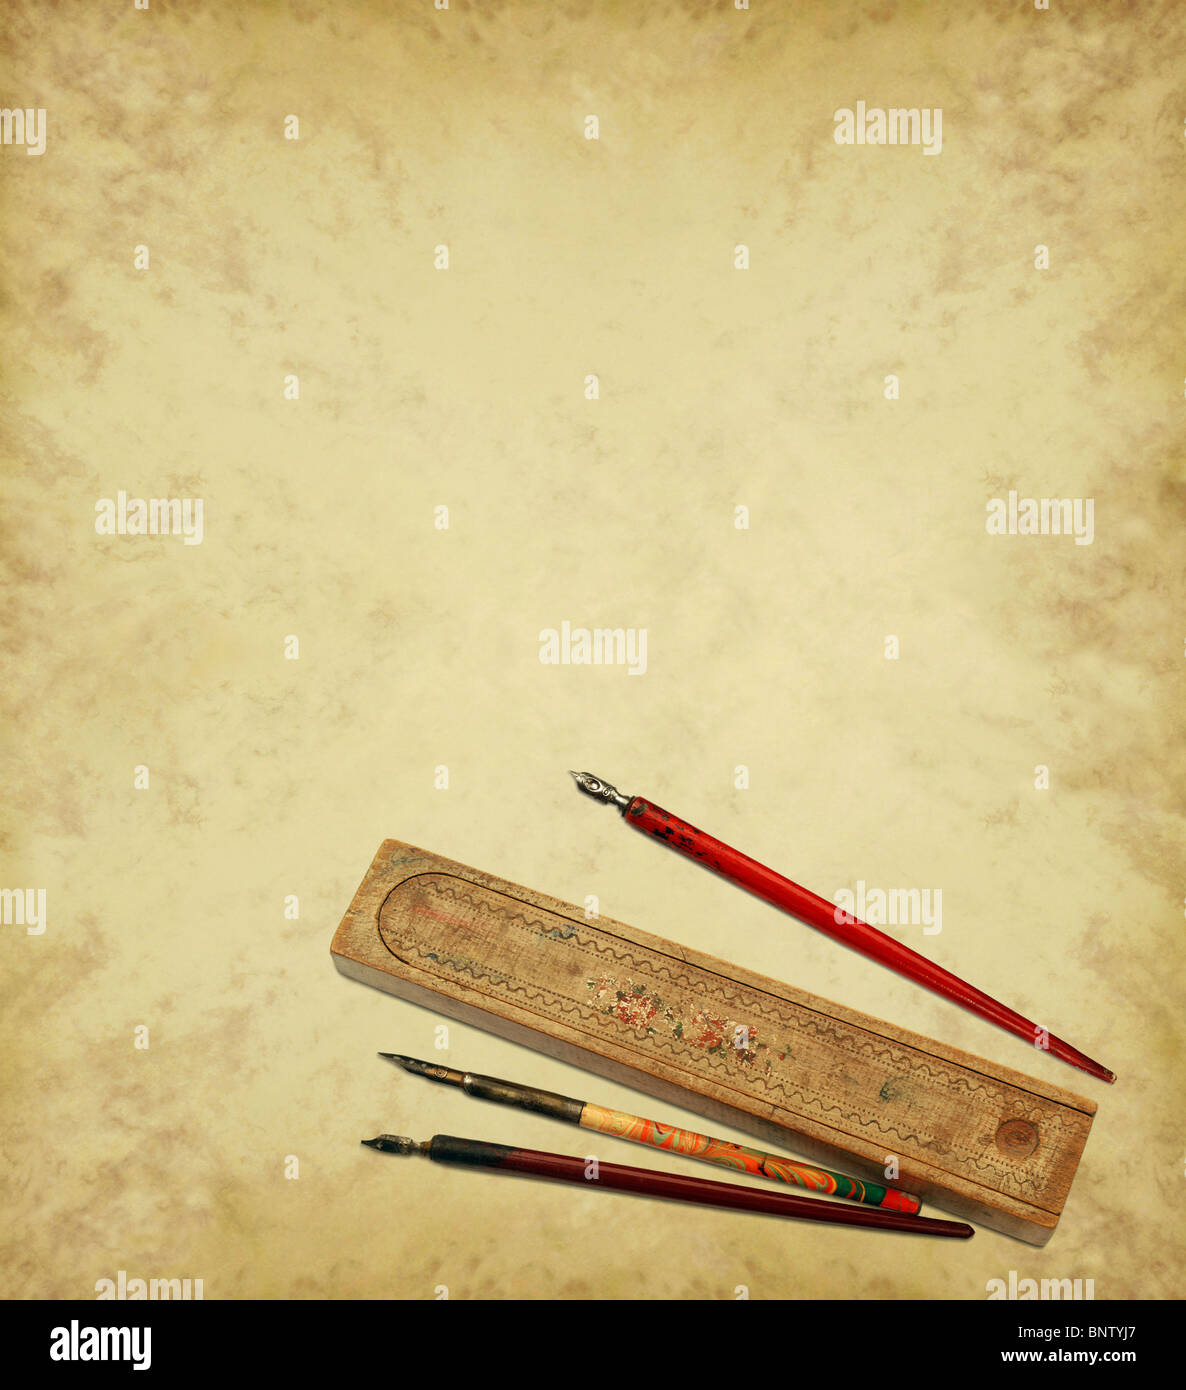 Parchment background with old pens - Stock Image